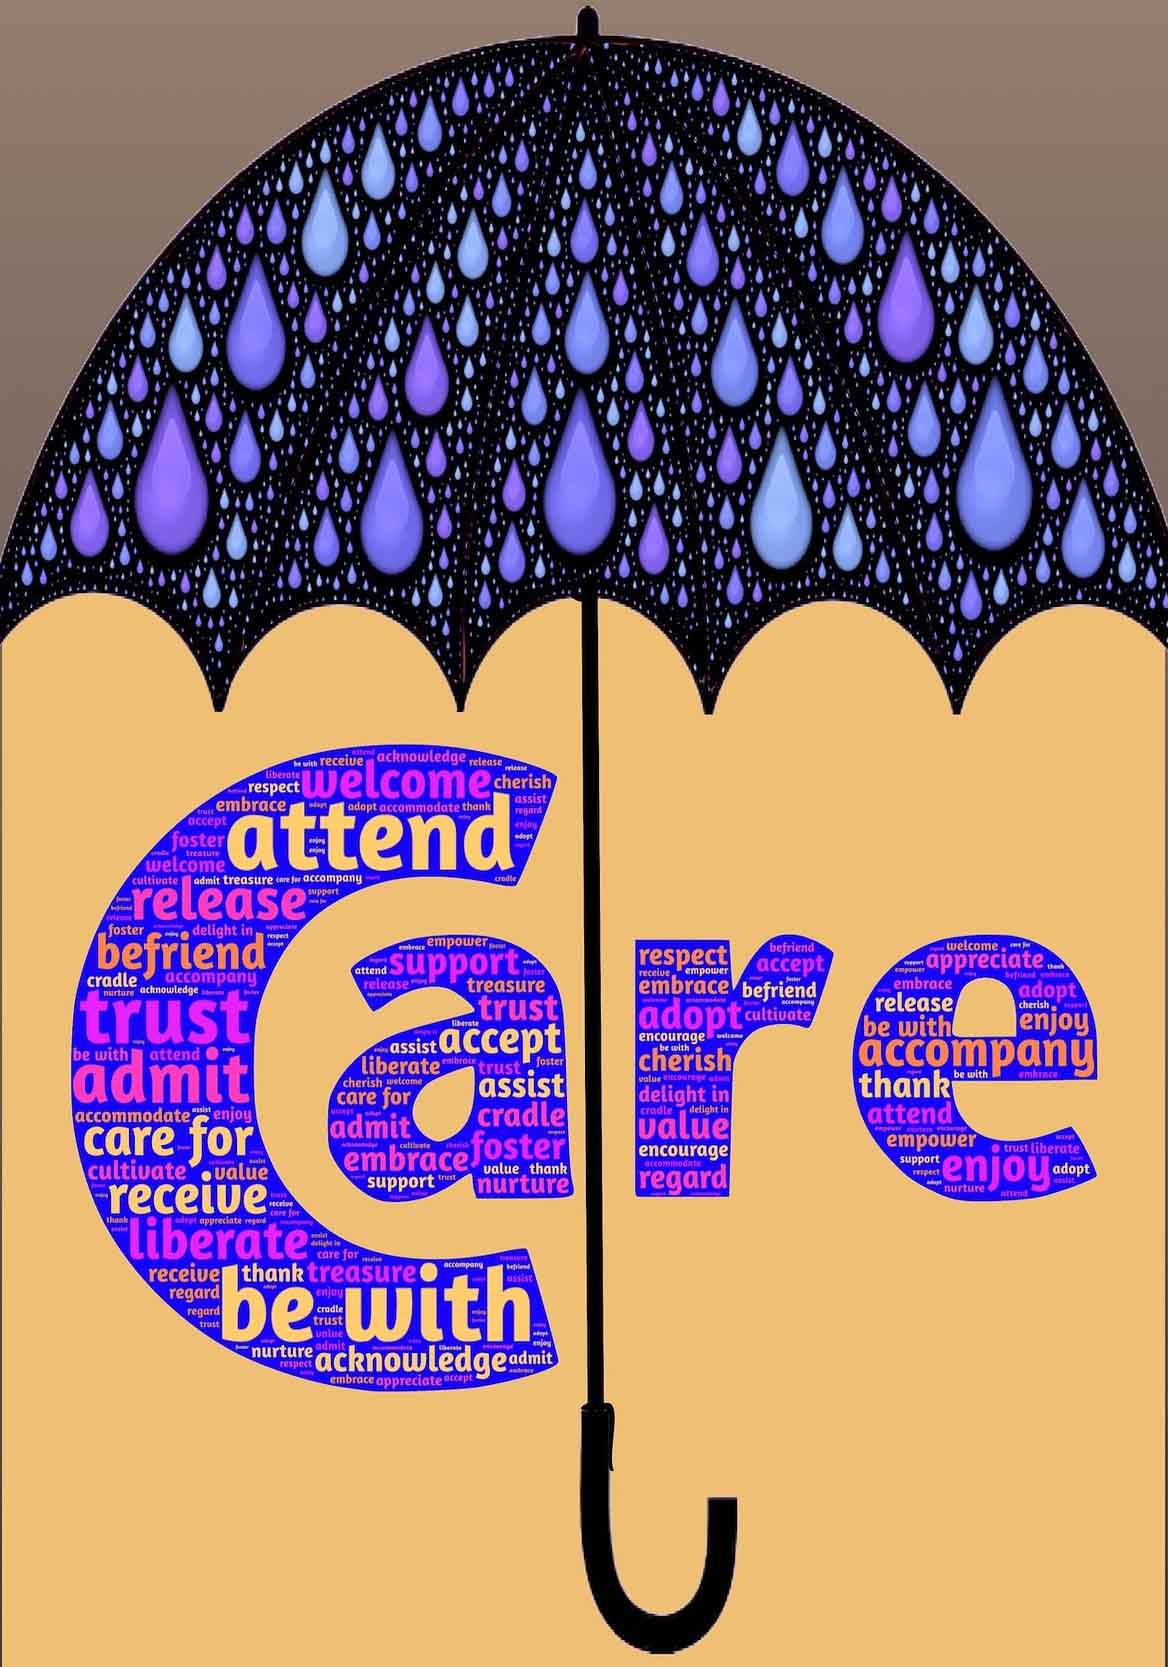 Illustration of umbrella over the word 'Care'